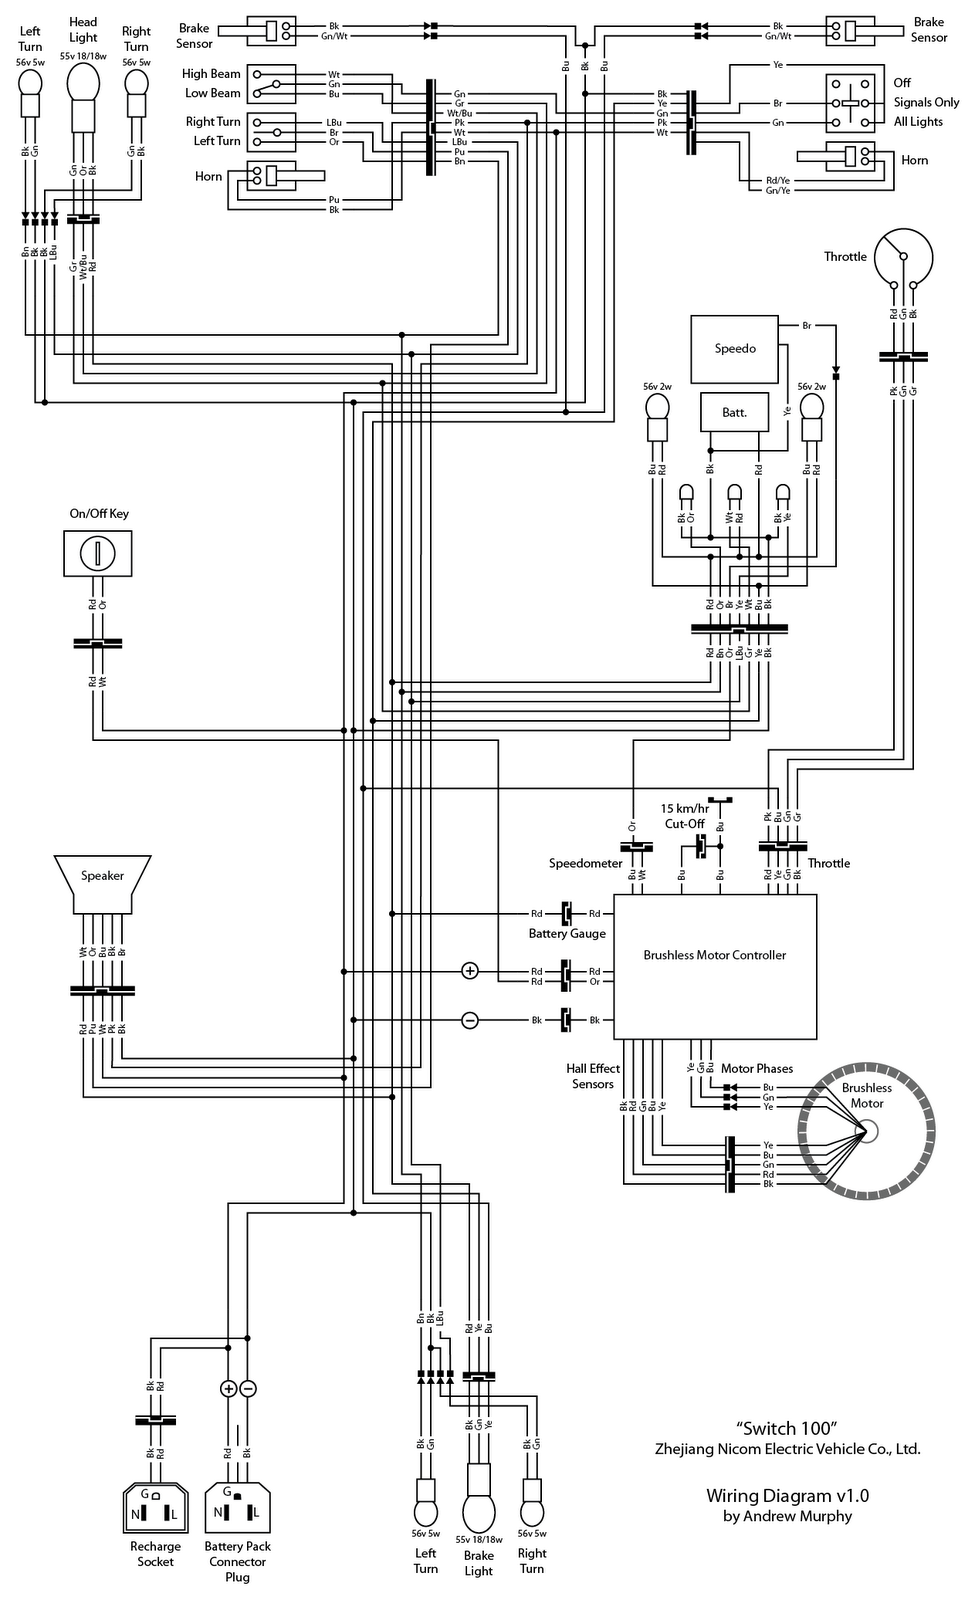 andr01d make e bike updated battery wiring diagrams rh andr01dm blogspot  com hero bike wiring diagram pdf